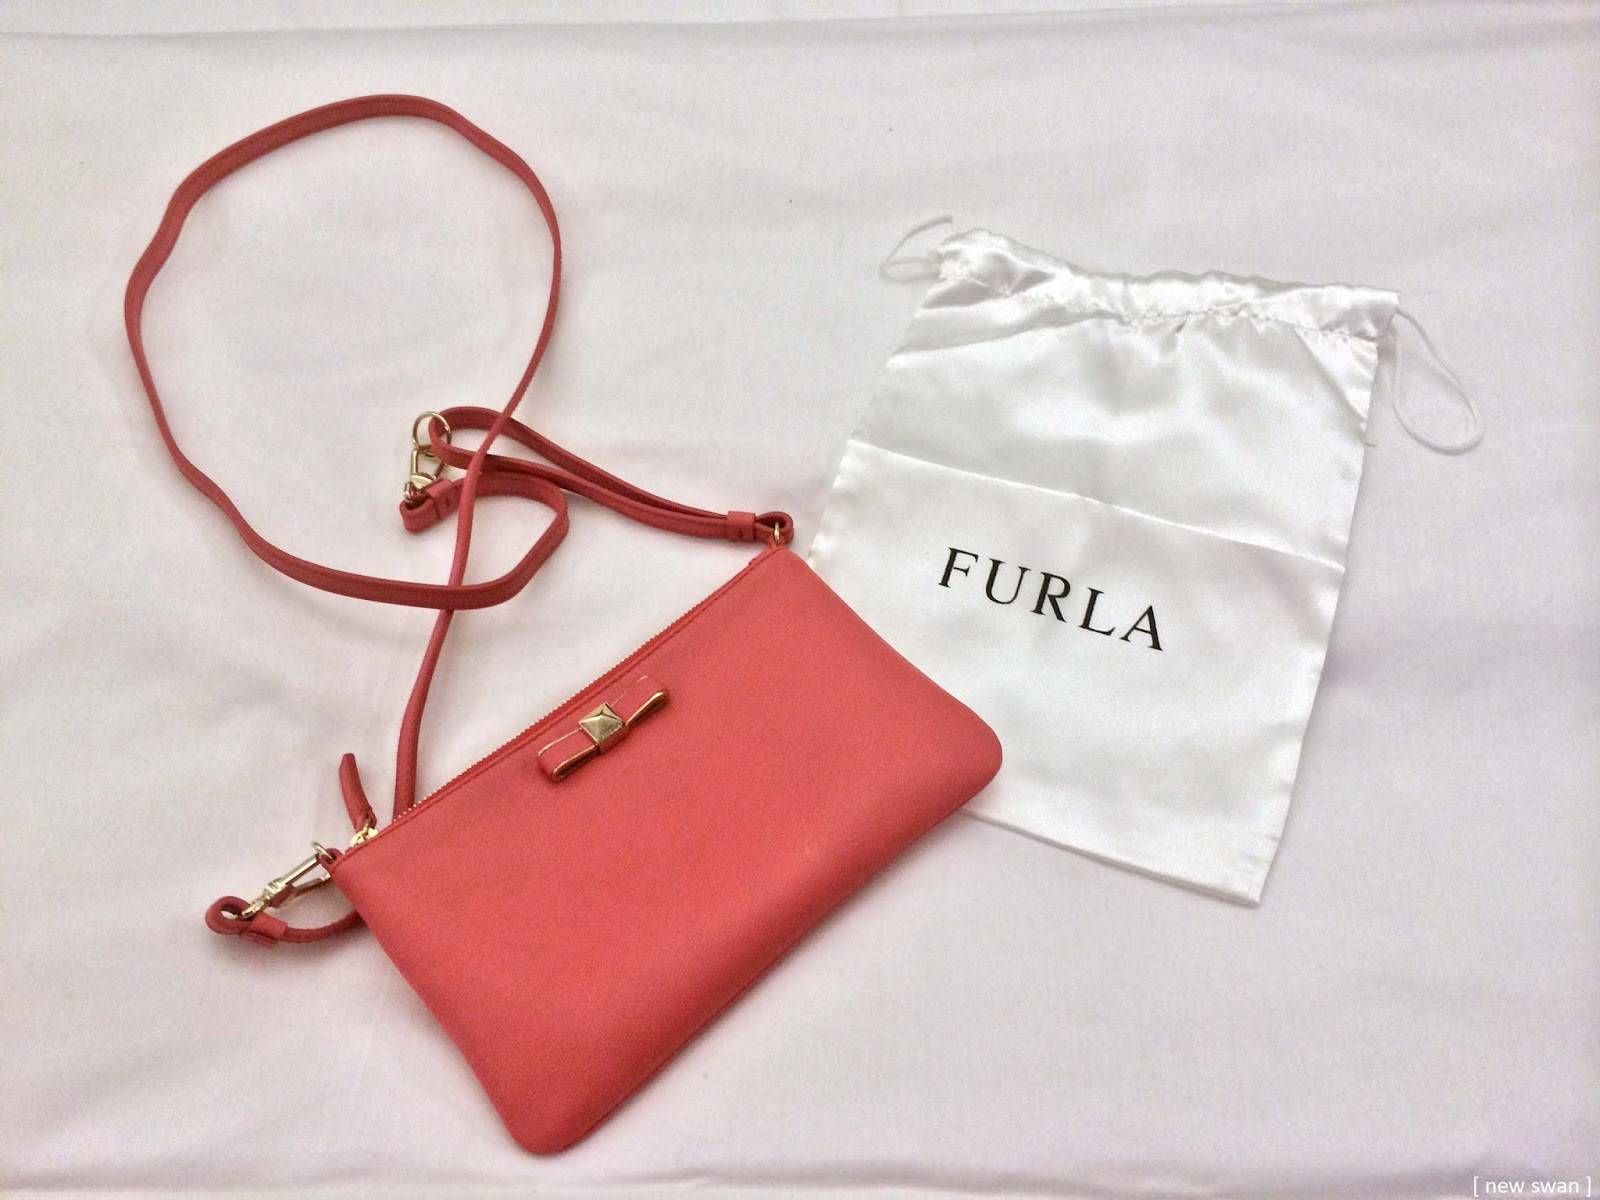 Furla Chantilly Mini Bag